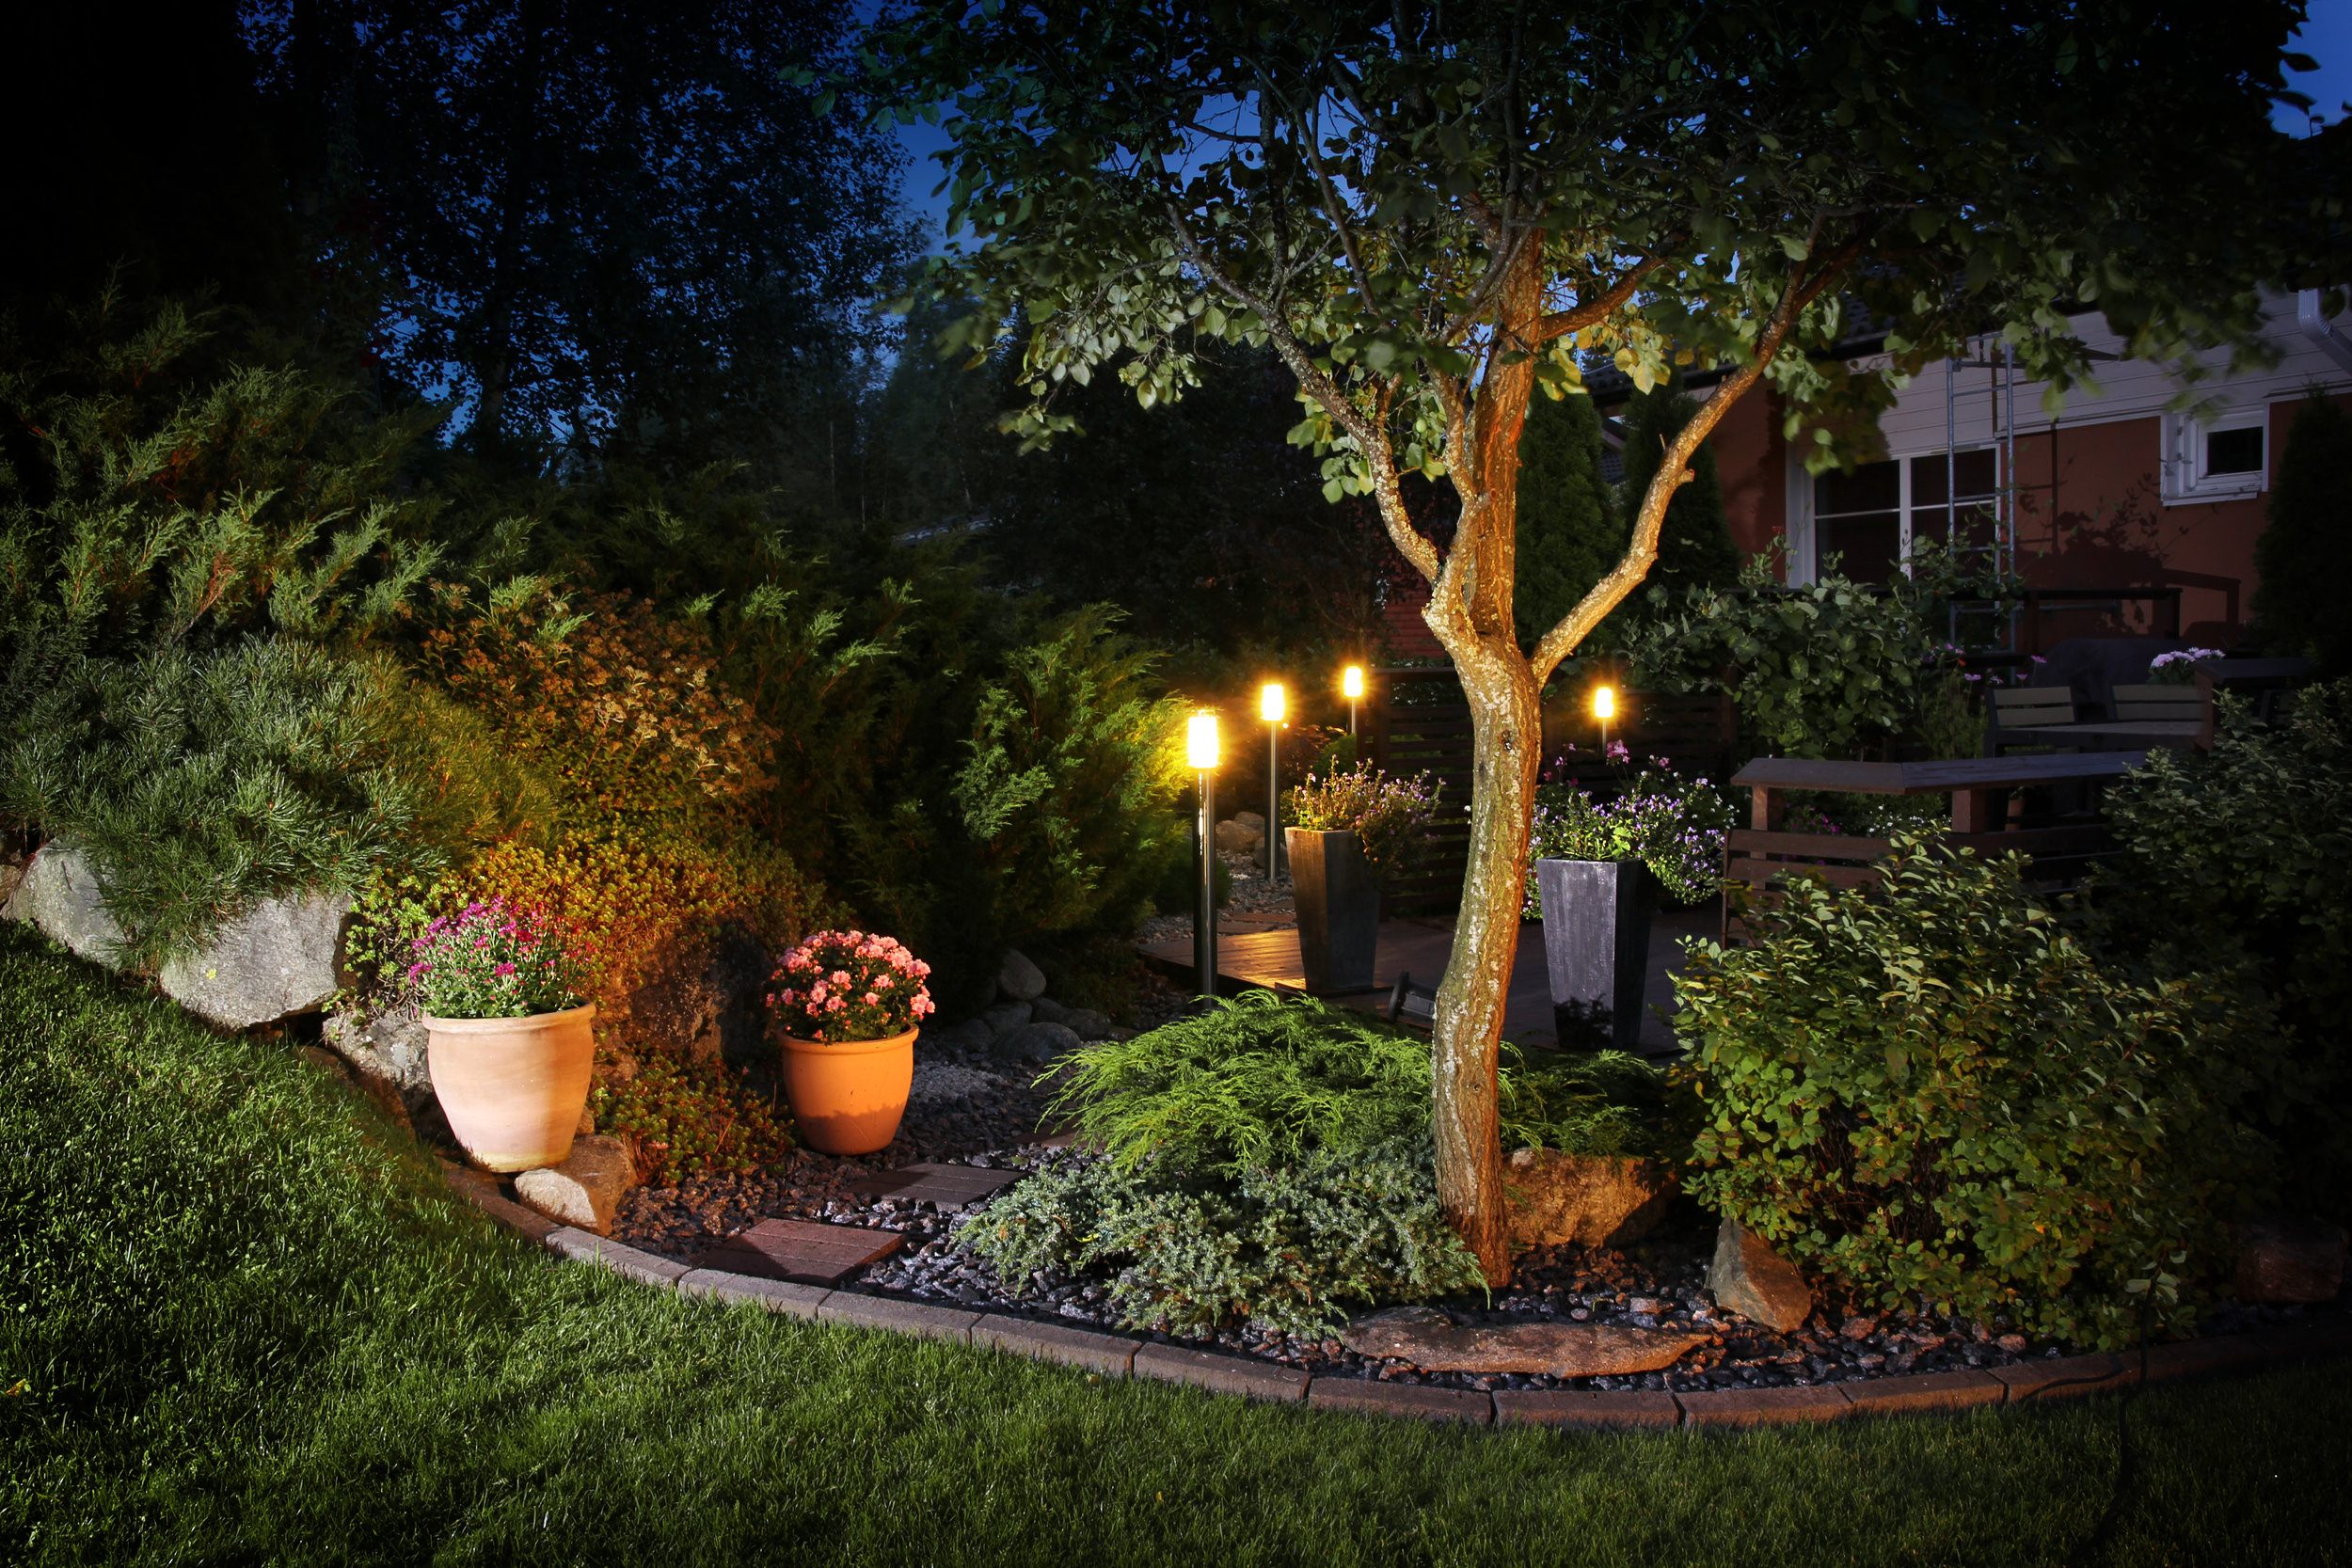 LED illumination for exterior features